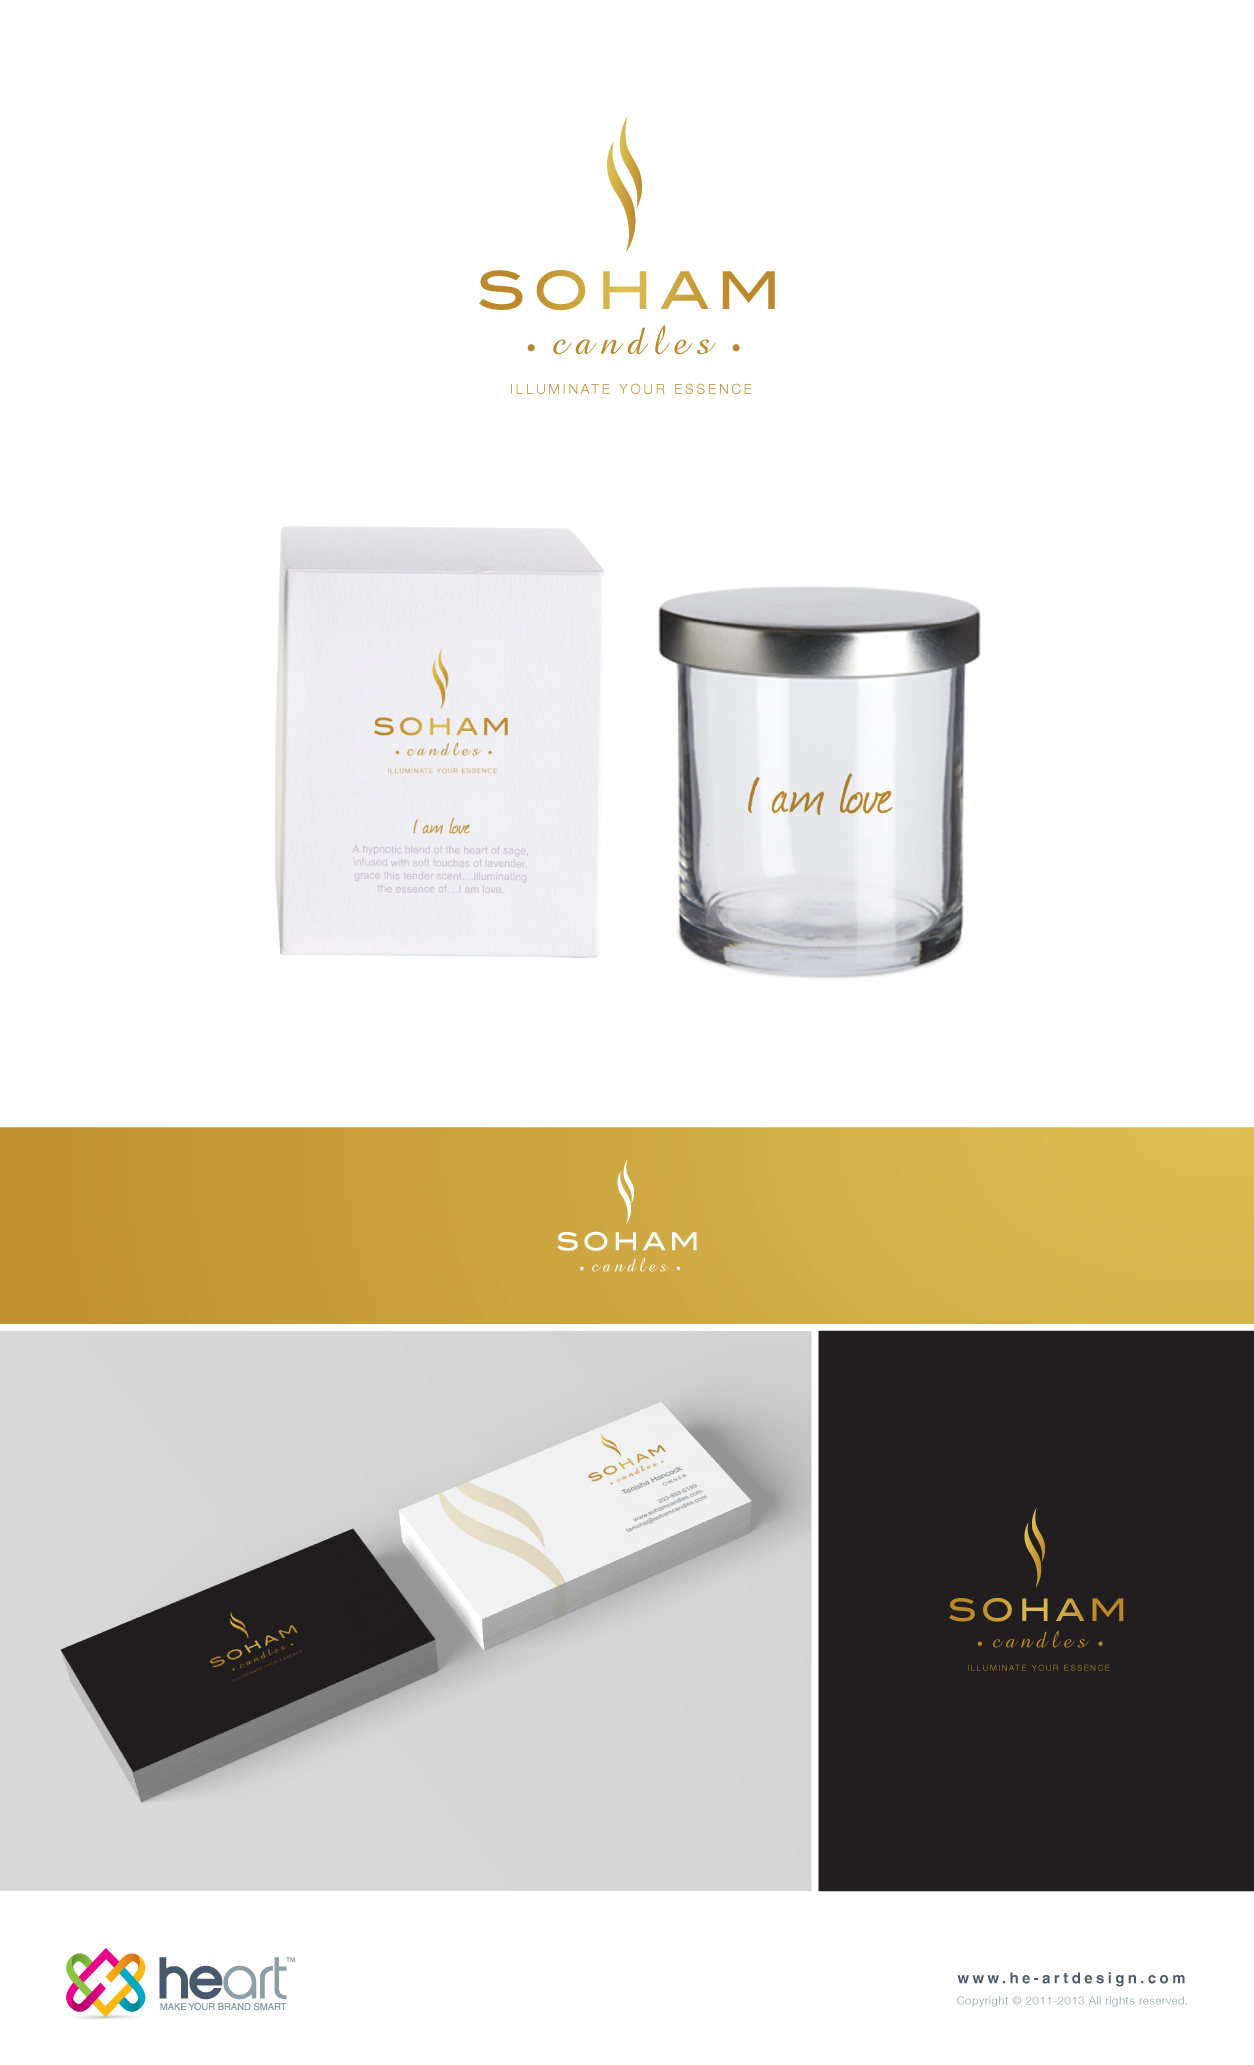 Create a logo and business card for a uniquely, creative candle company